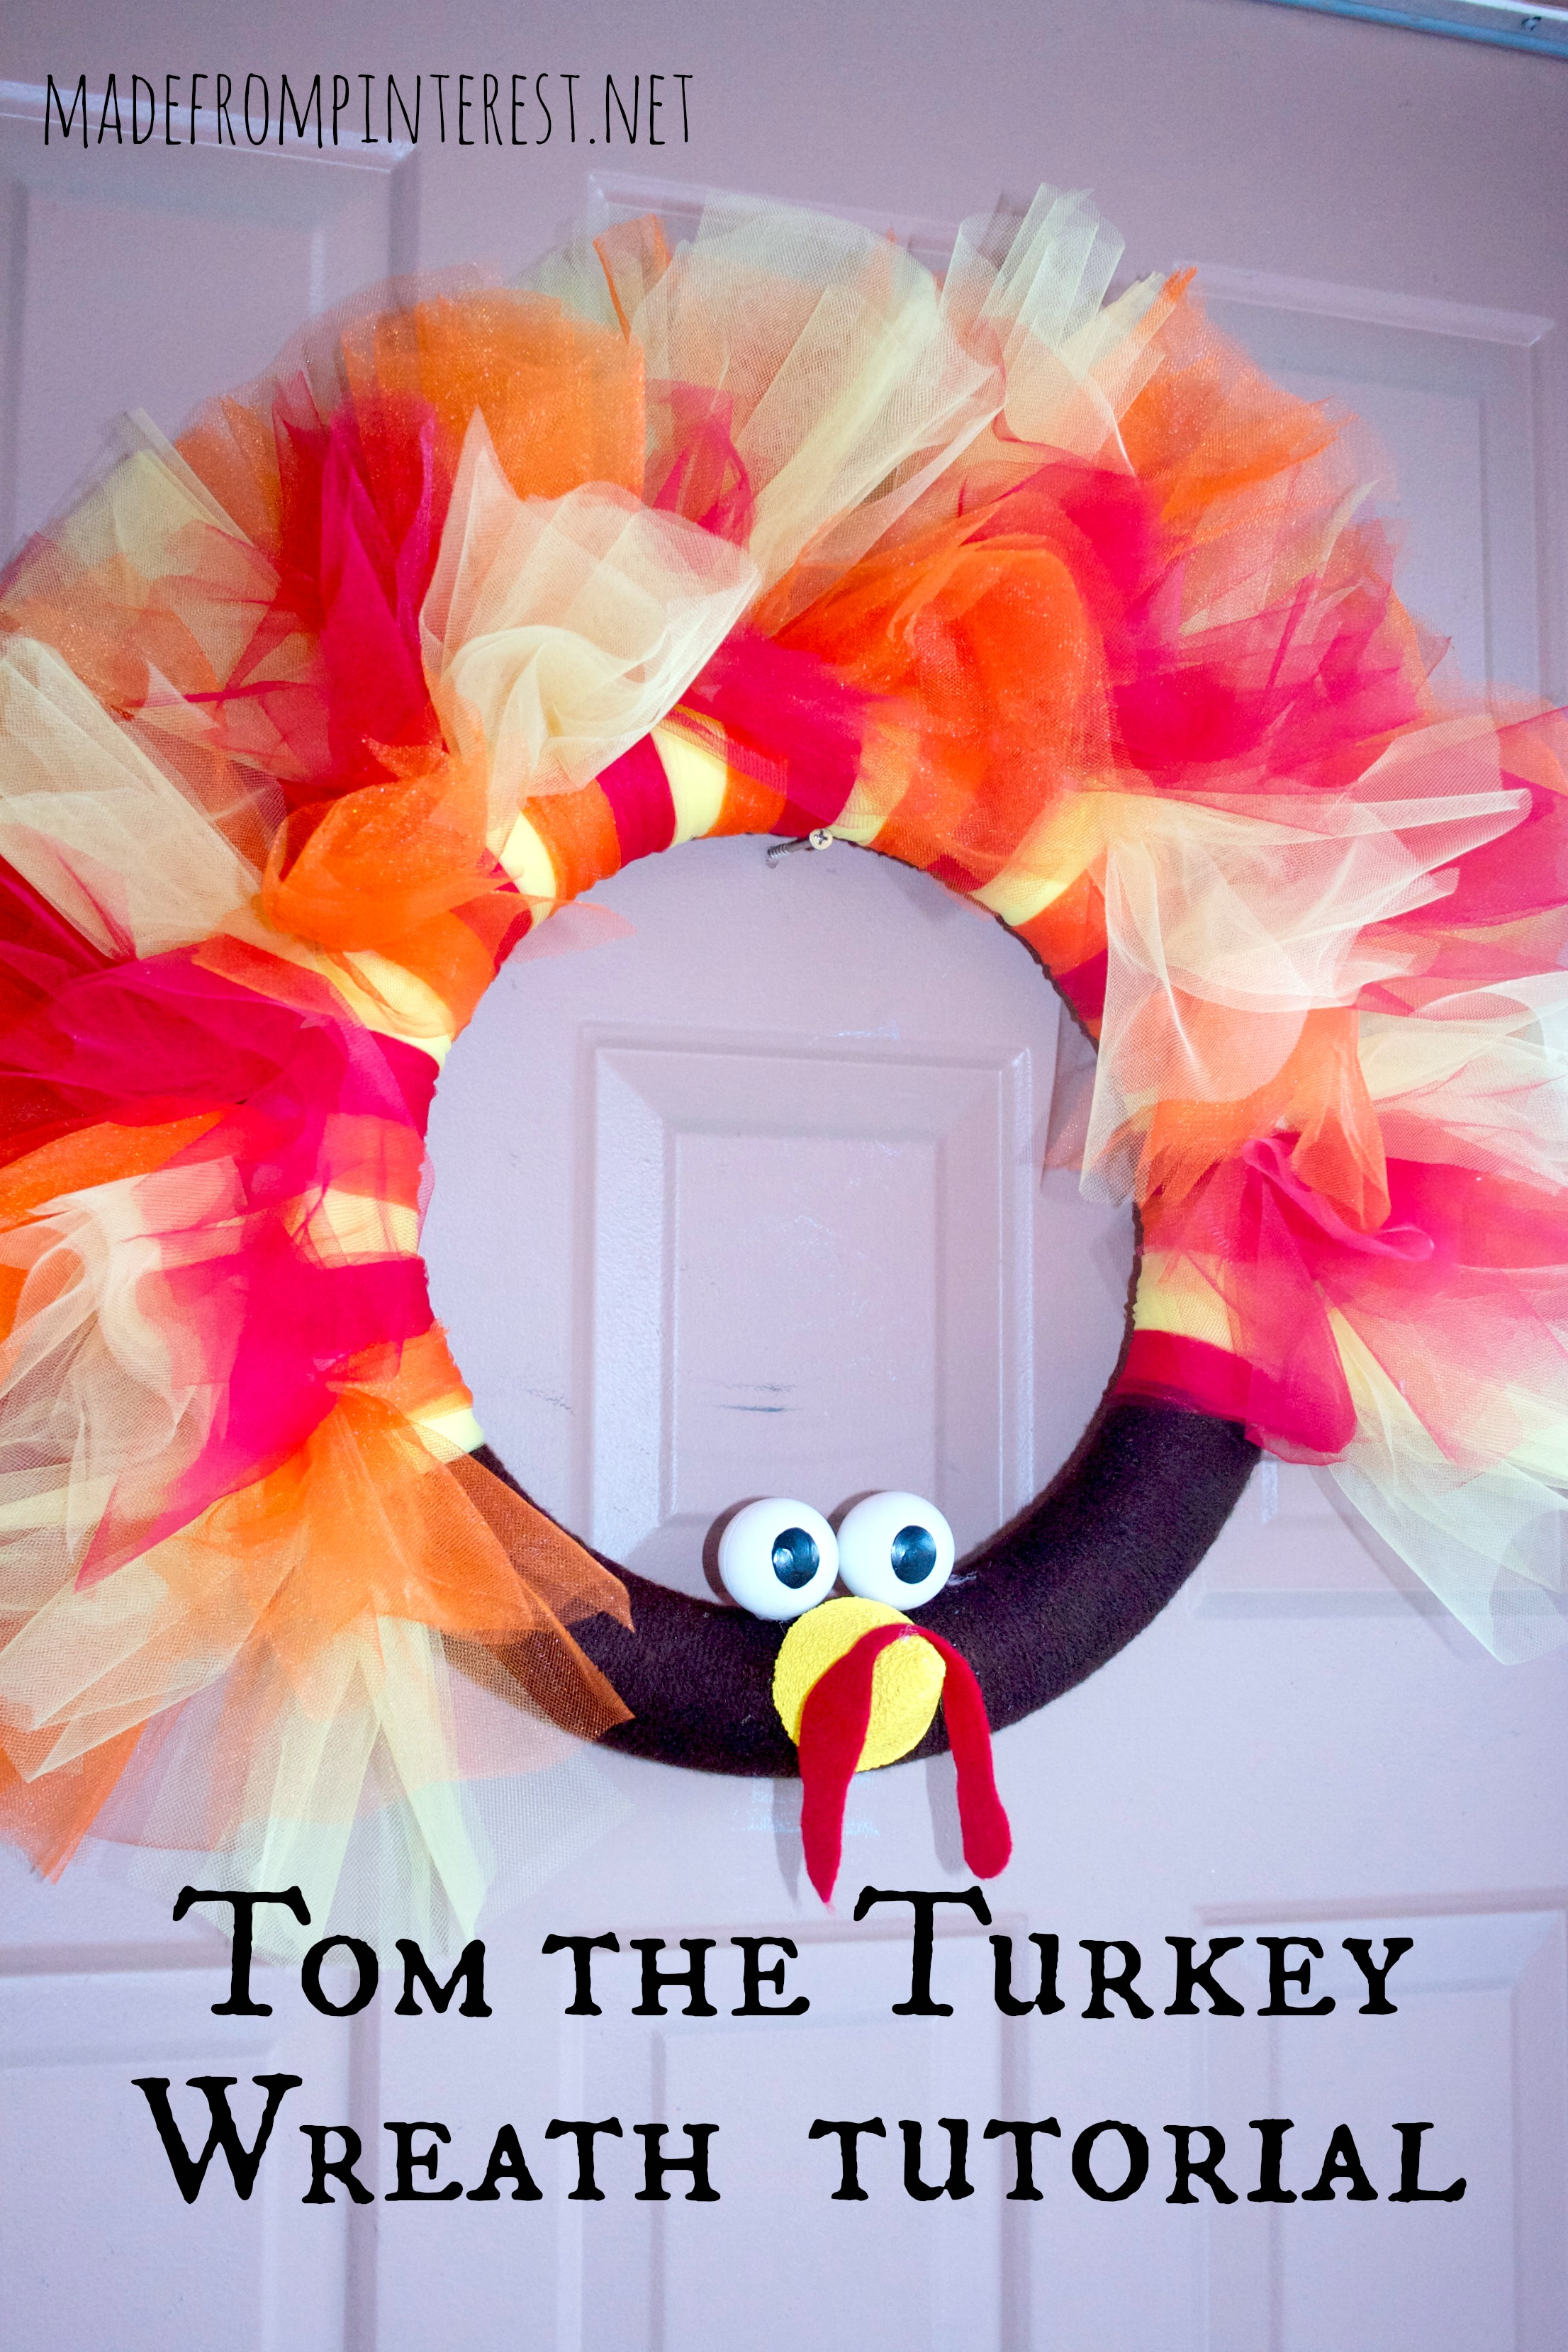 Thanksgiving wreath tutorial tgif this grandma is fun create this darling turkey wreath to greet your thanksgiving guests when they arrive from madefrompinterest kristyandbryce Image collections